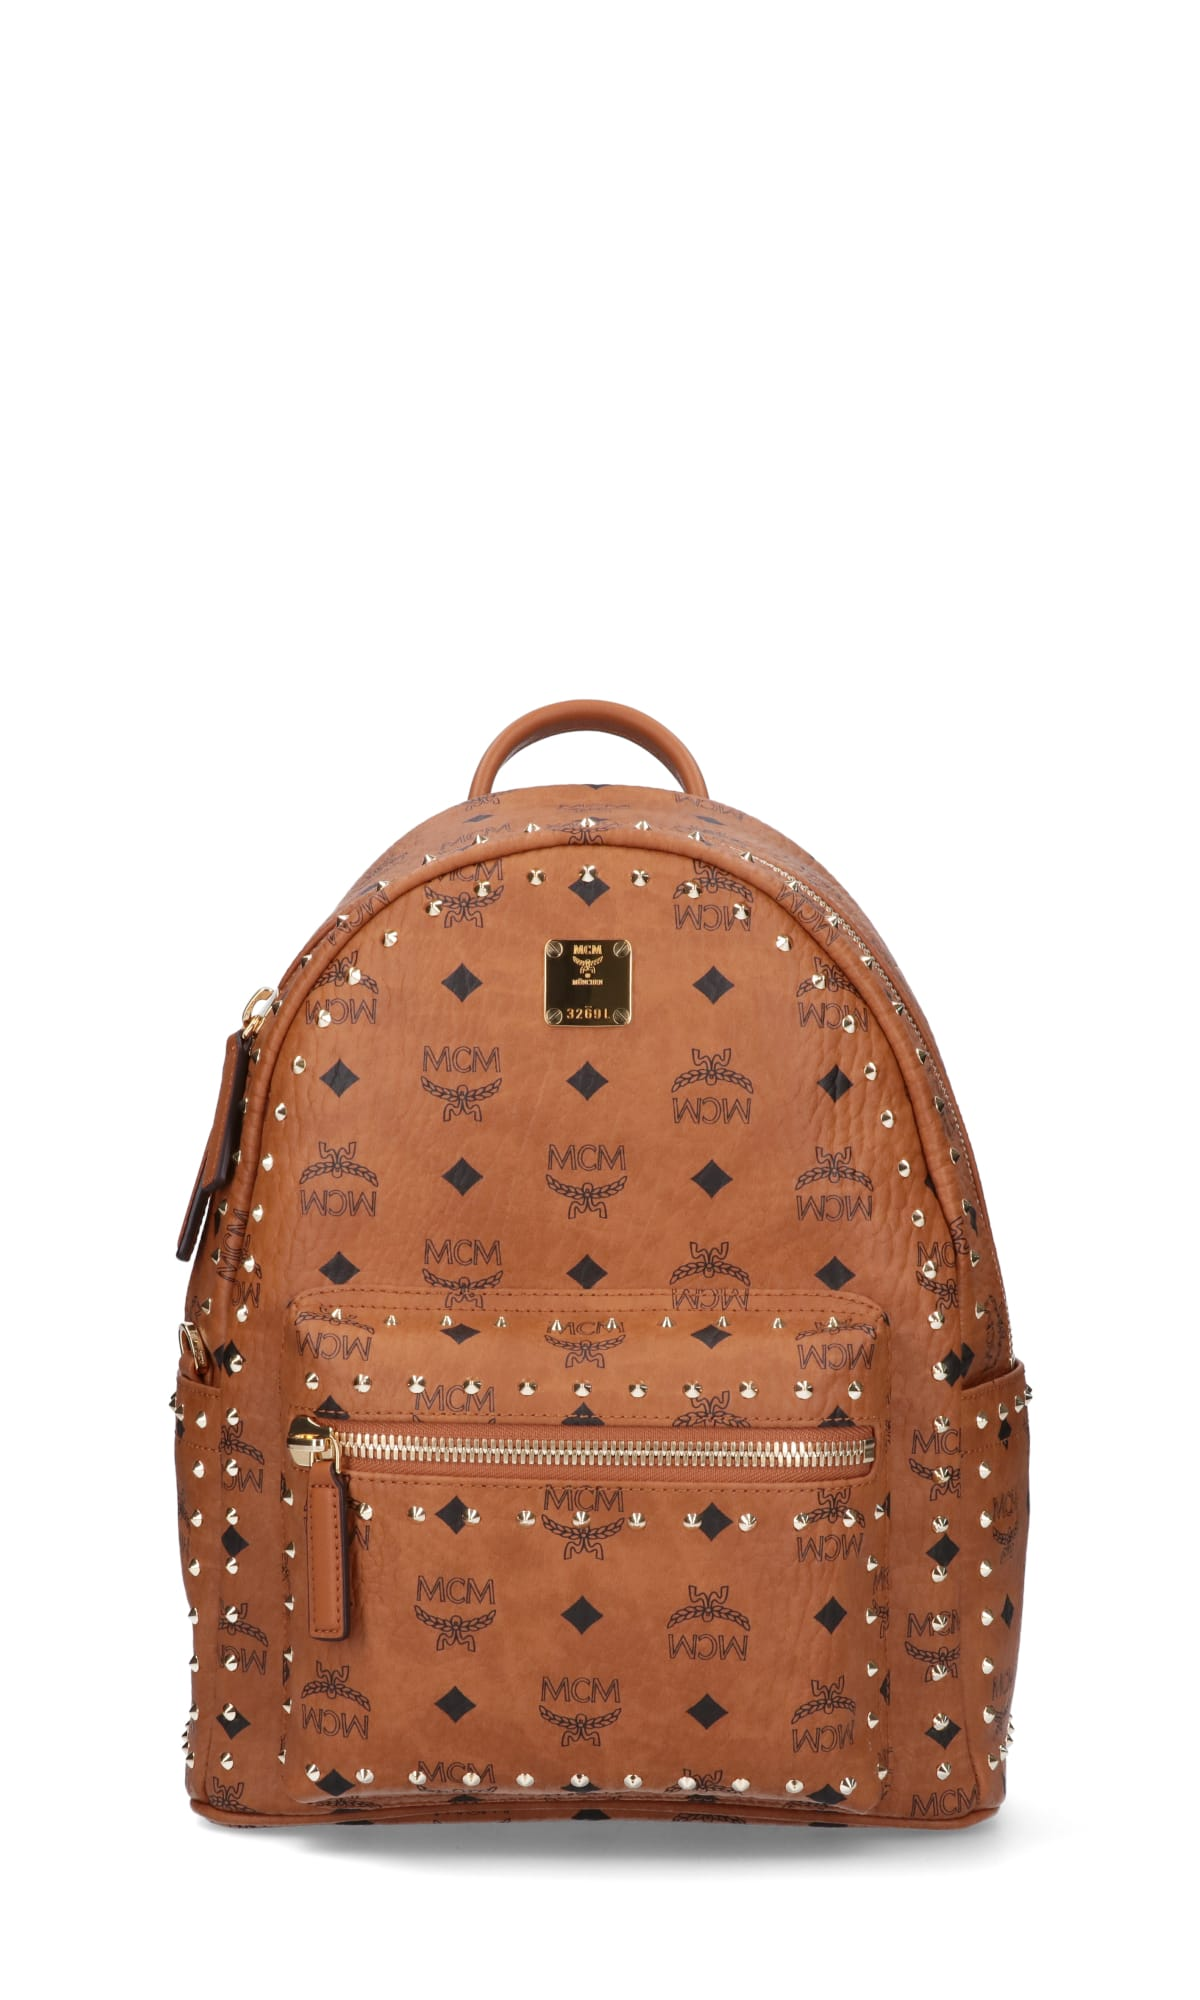 Mcm LARGE STARK BACKPACK